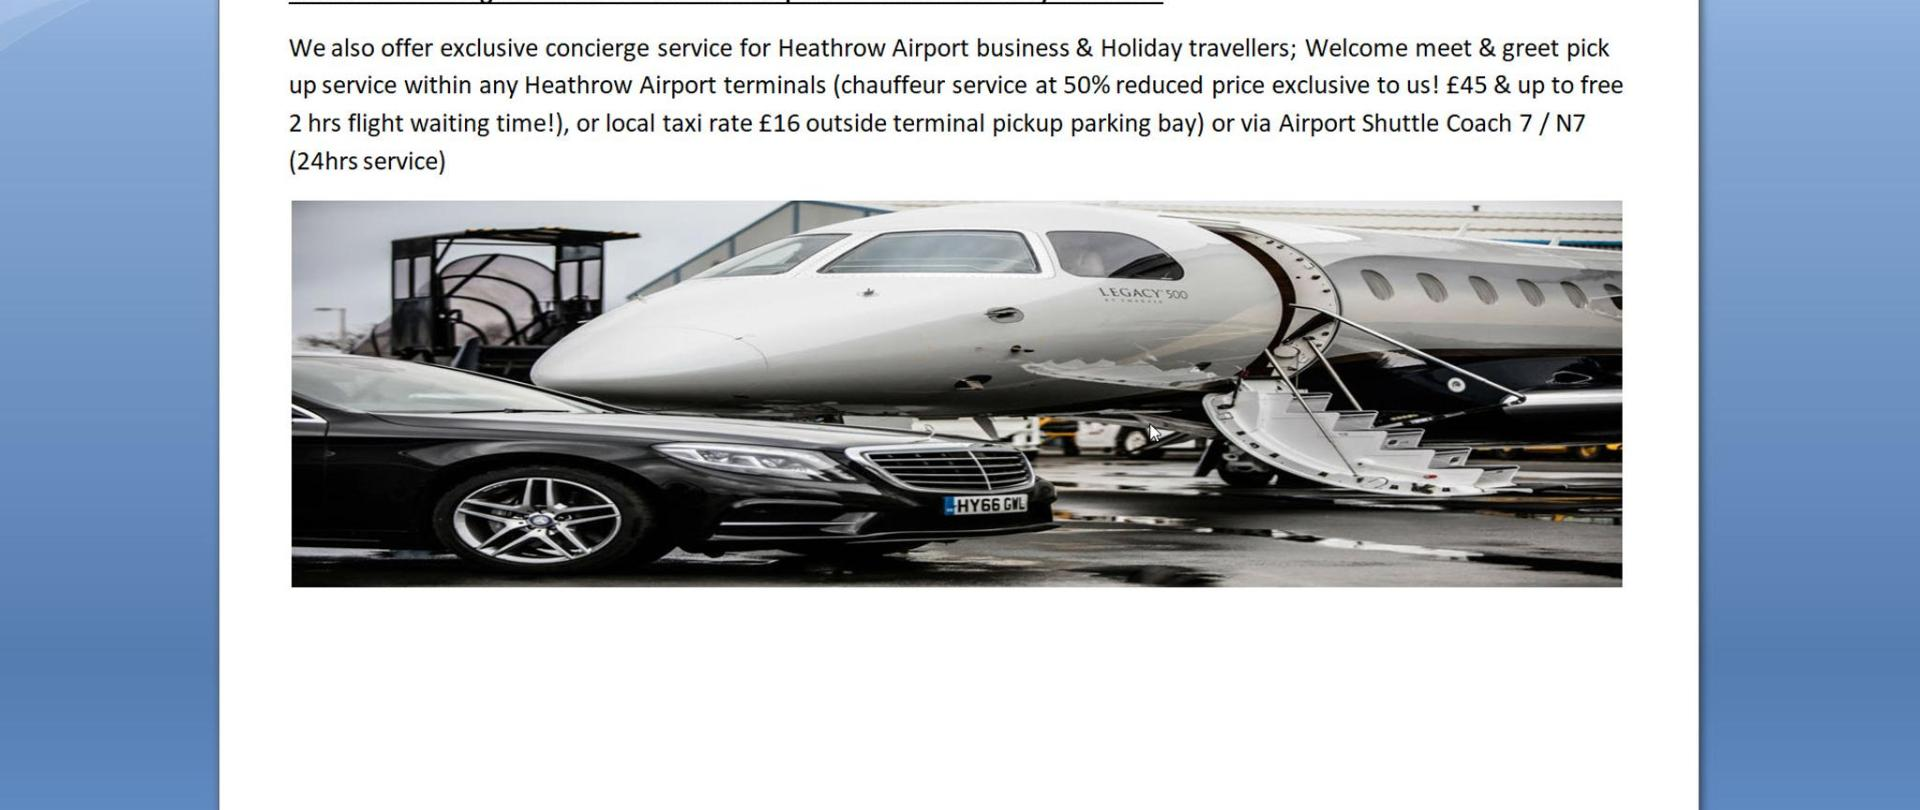 Meet And Greet Parking At Heathrow Terminal 5 Images Greetings